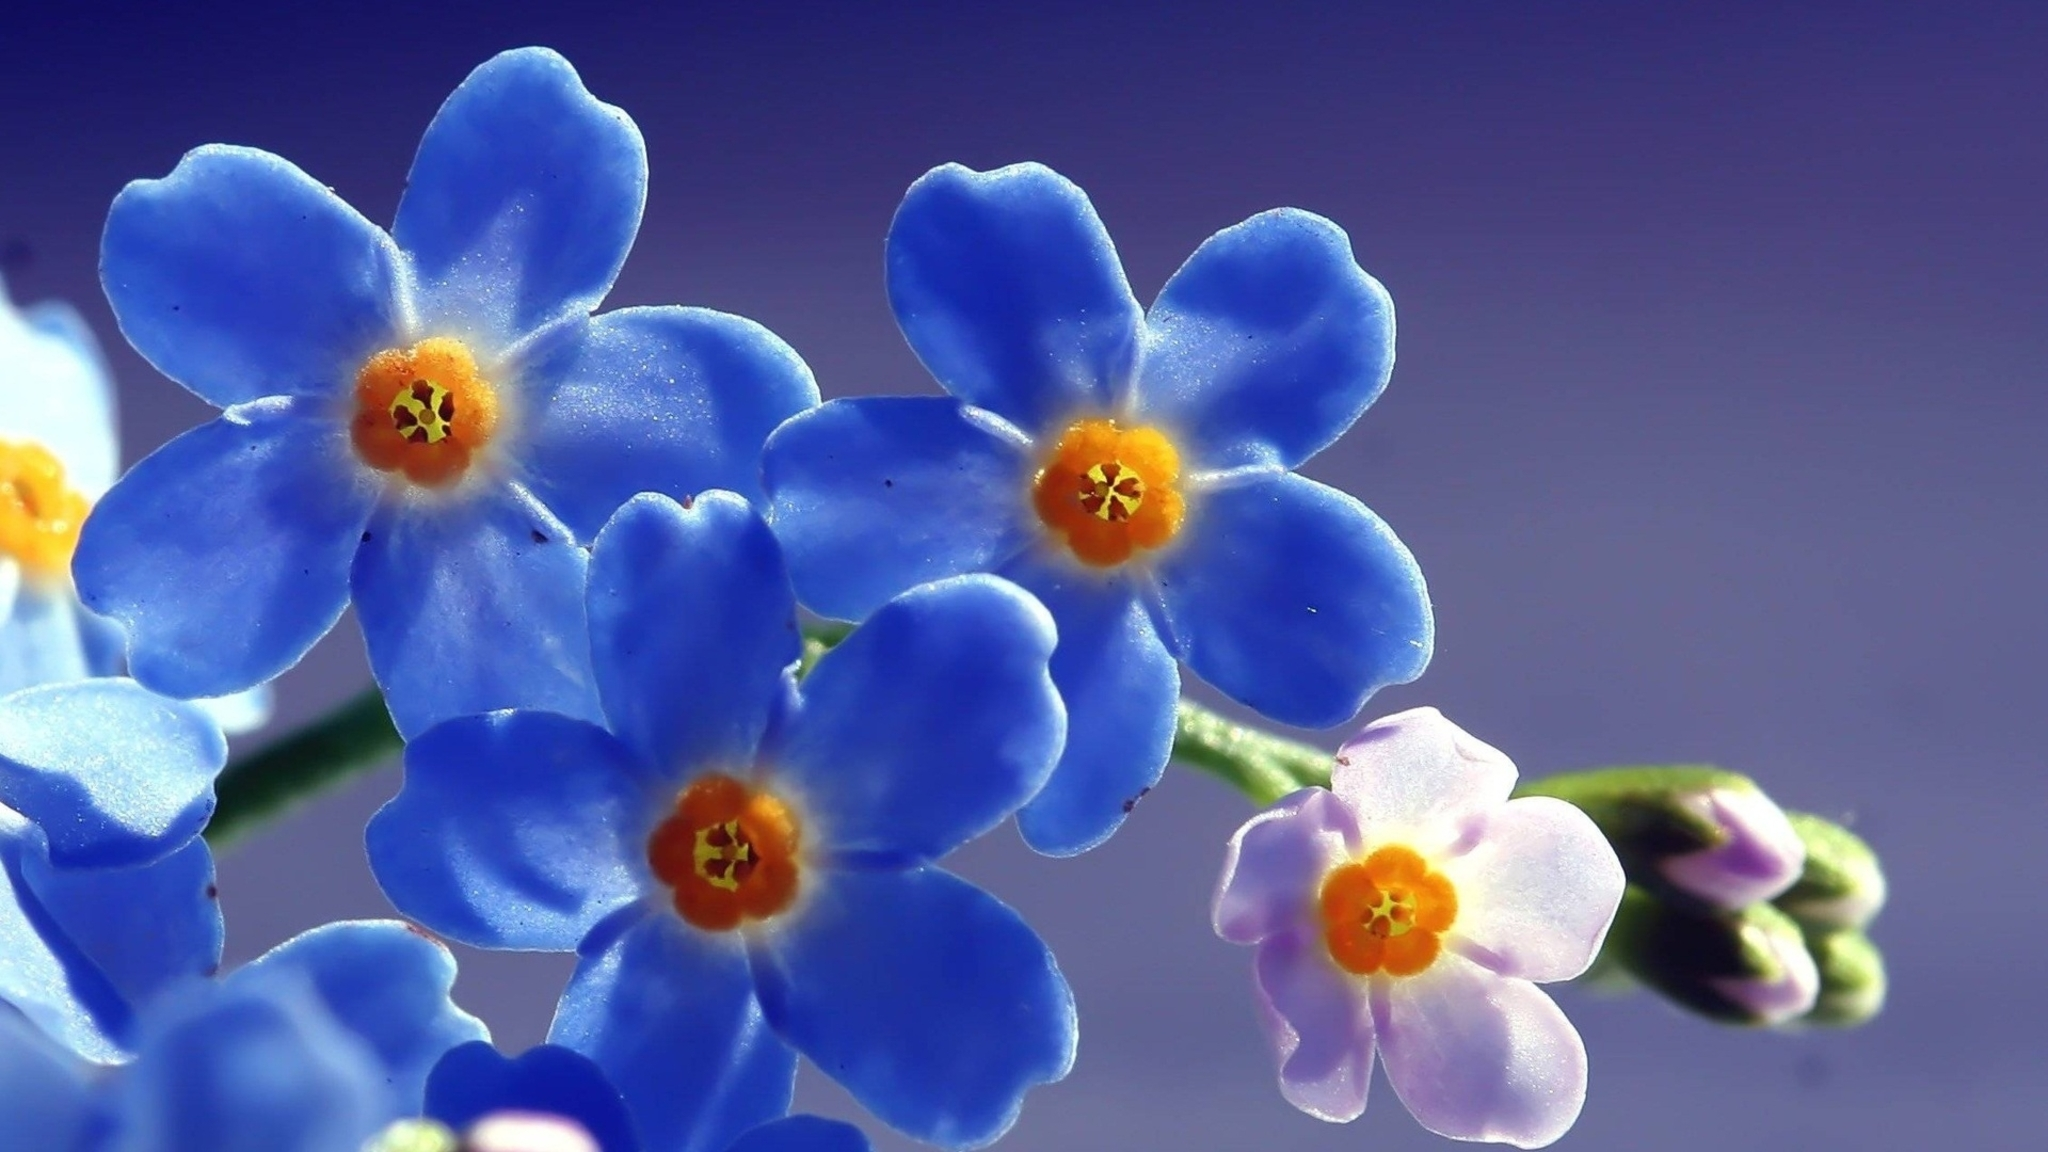 2048x1152 Blue Beautiful Flowers 2048x1152 Resolution Hd 4k